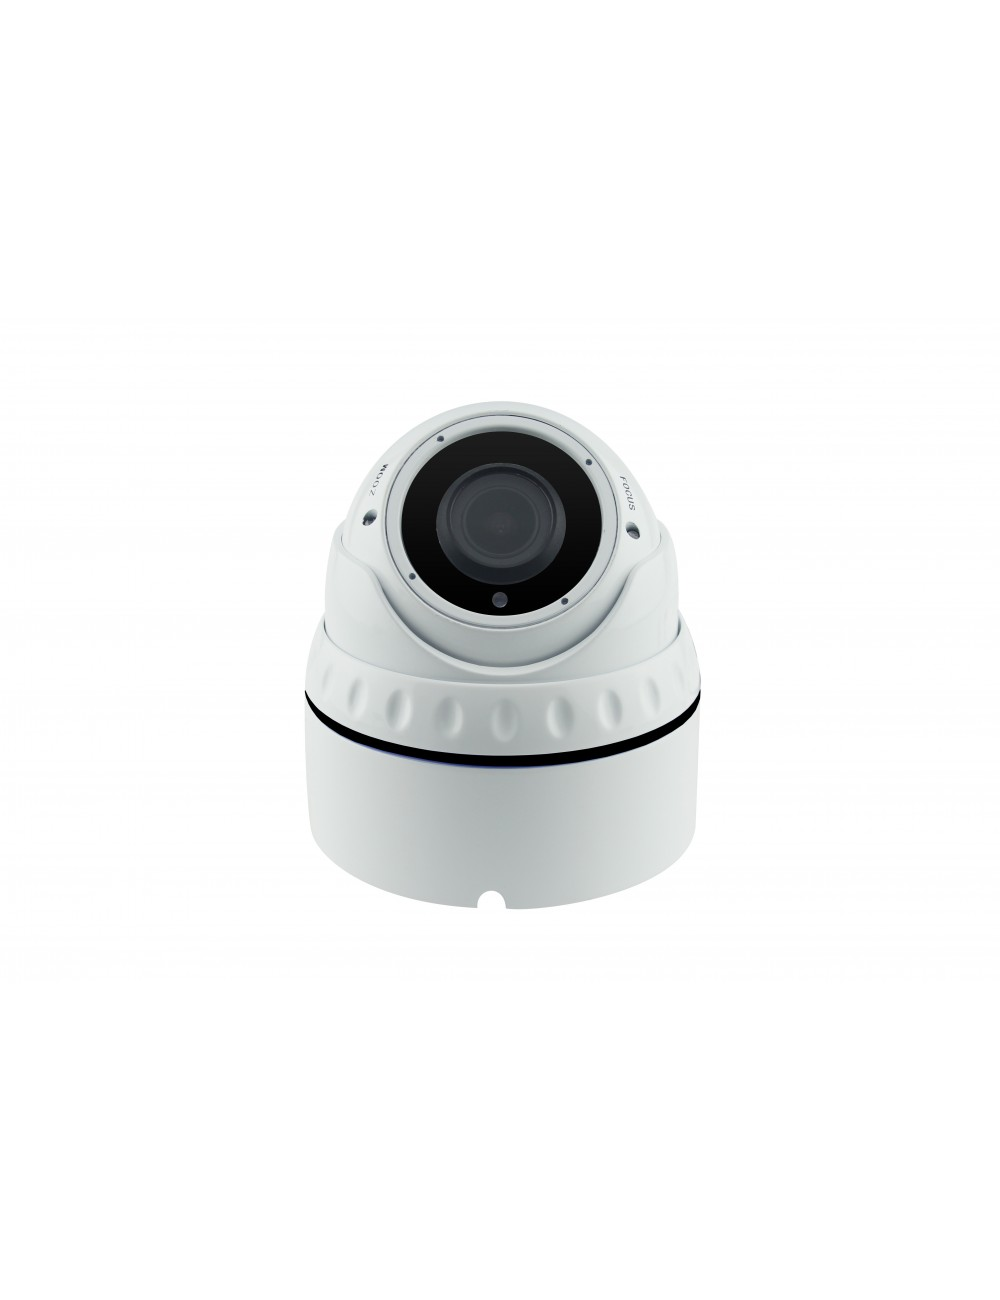 AHD AF dome kamera 2.7-13.5mm 5MP autofocus